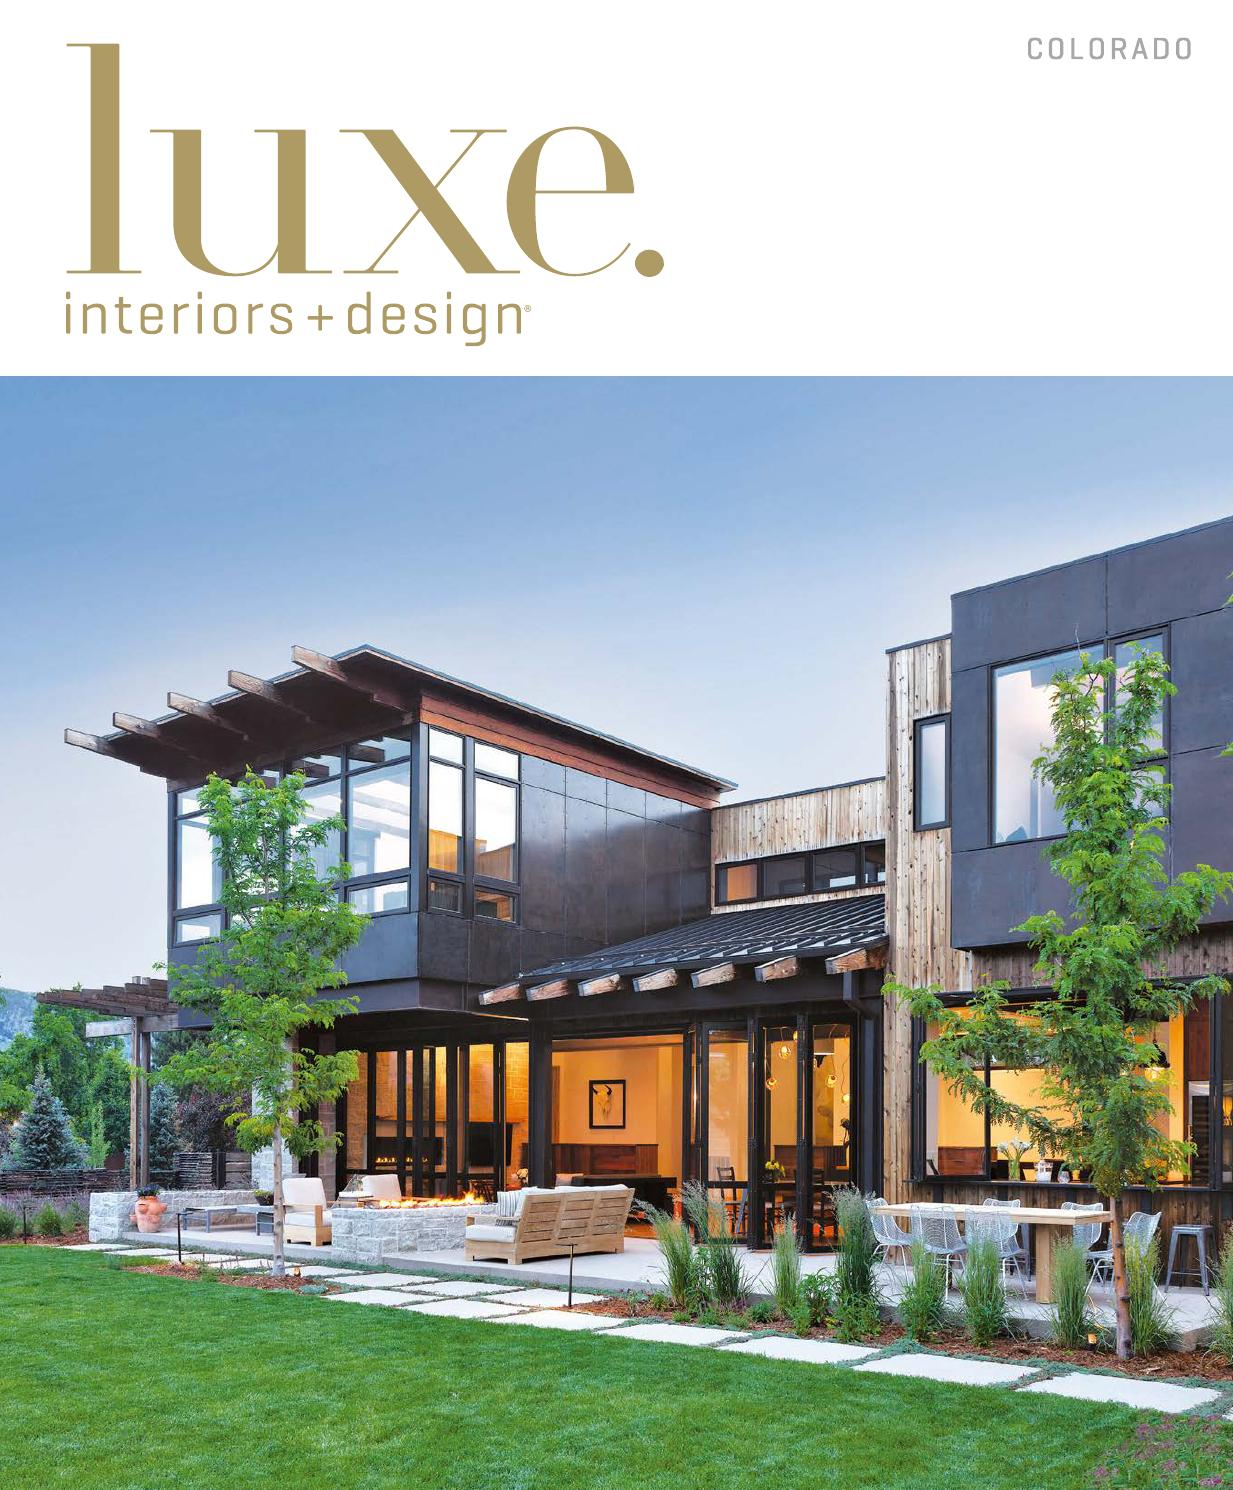 Luxe magazine september 2015 colorado by sandow media llc for Hotel luxe design